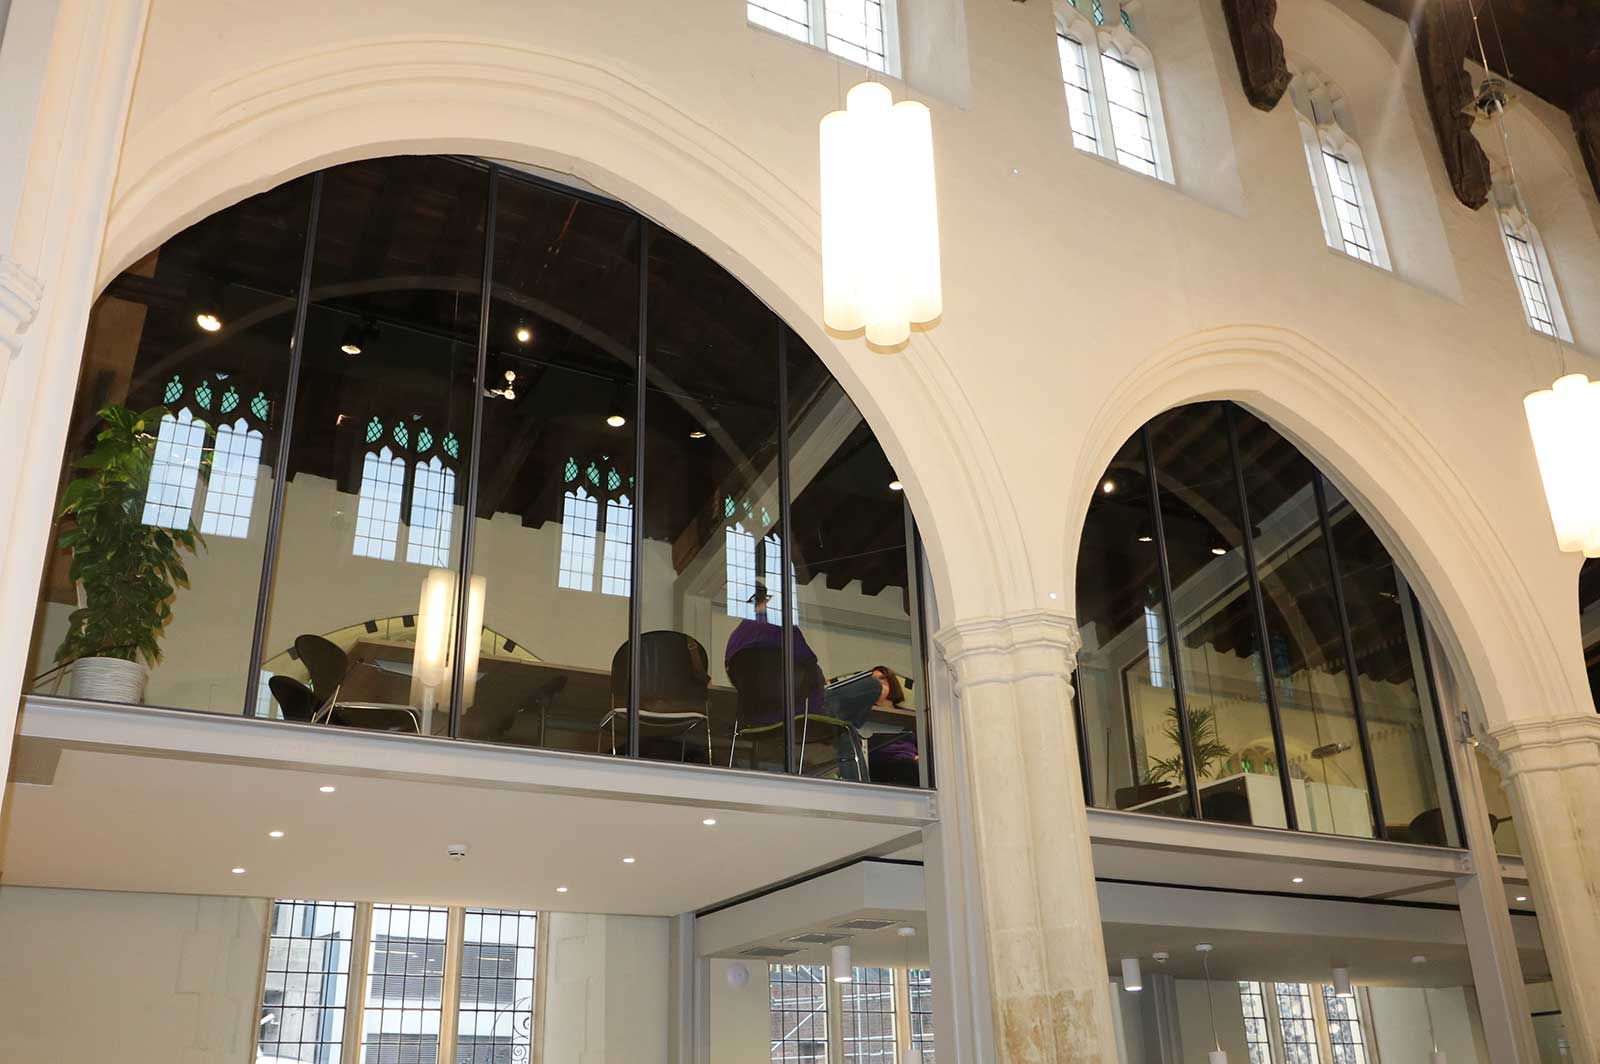 Glass Meeting Rooms Structural Glazing at St Mary's